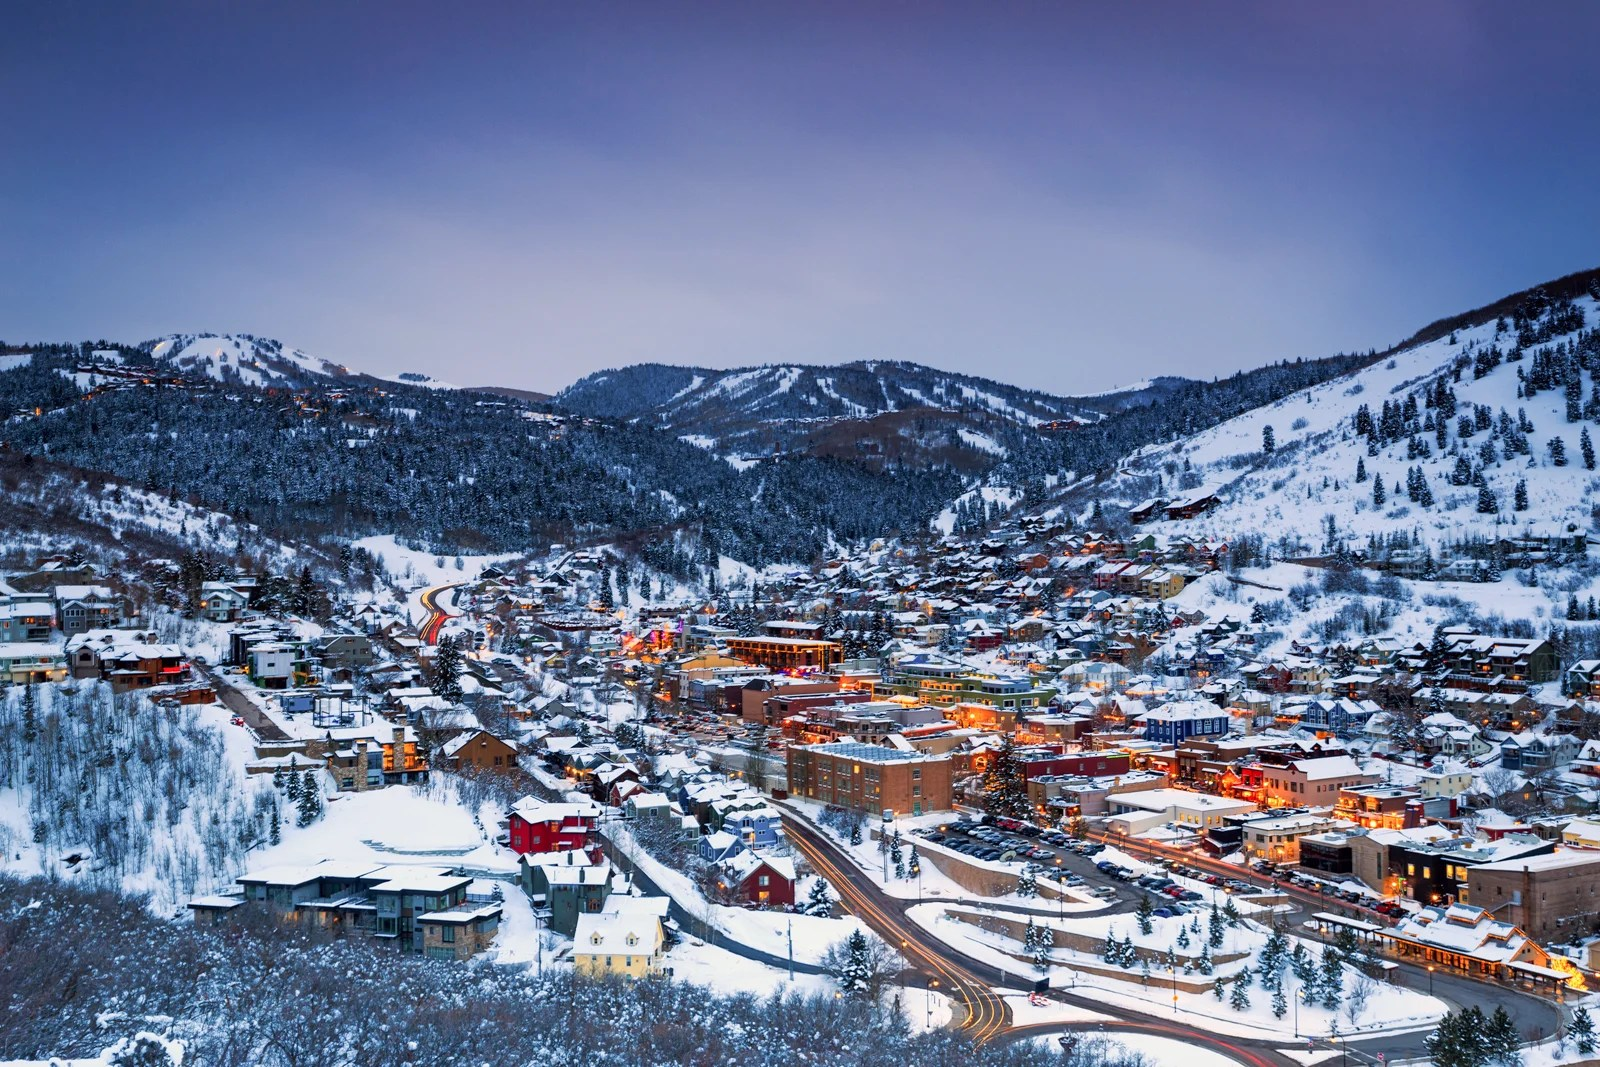 17 of the best ski towns in the US